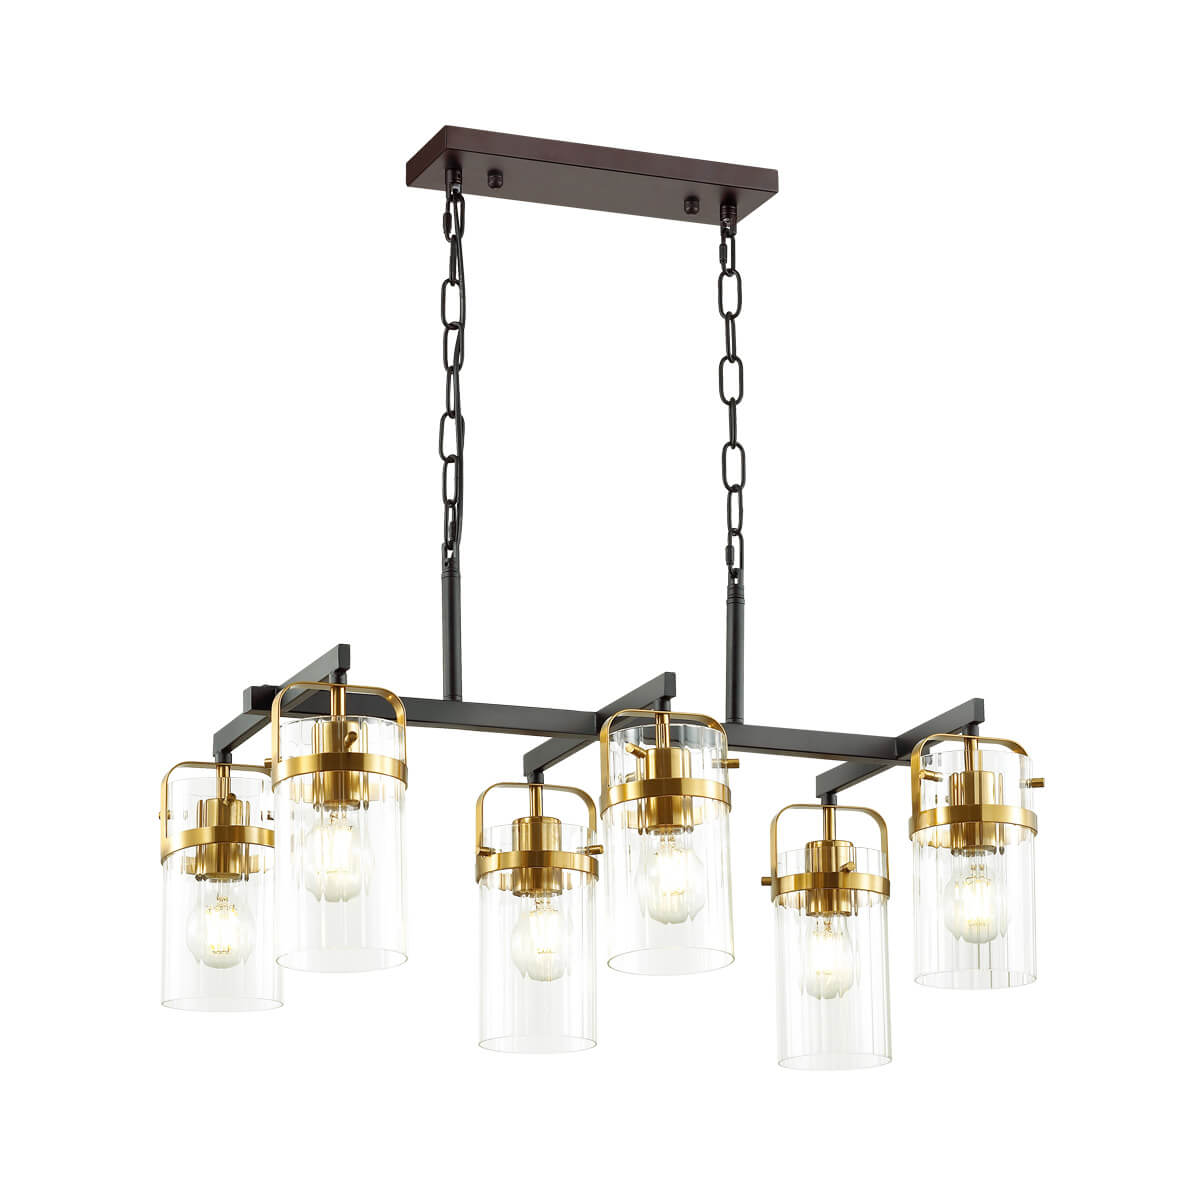 Люстра Odeon Light 4653/6 Country